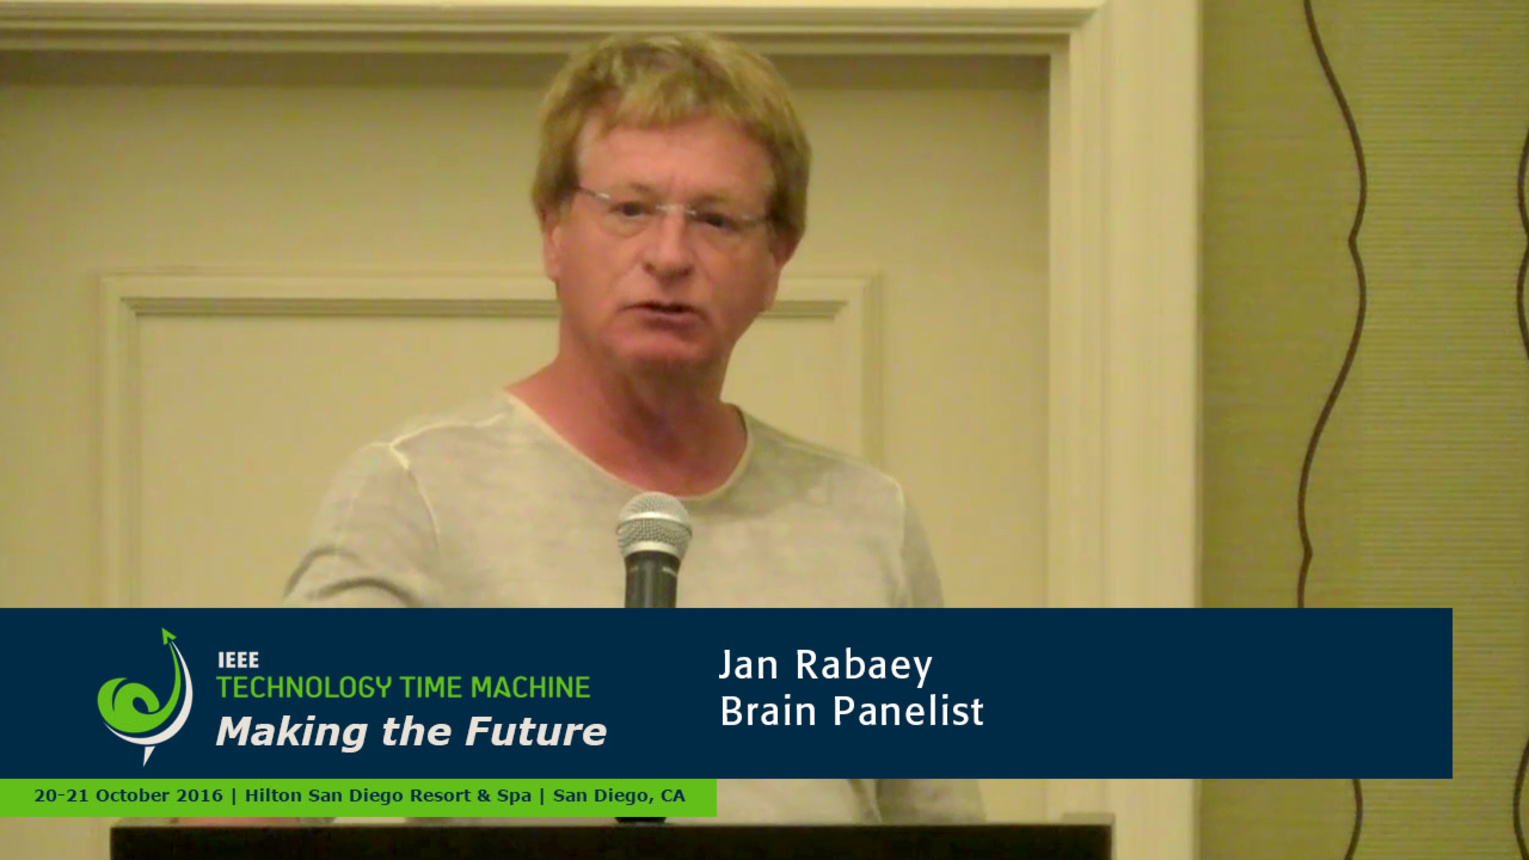 Brain Panelist - Jan Rabaey: 2016 Technology Time Machine